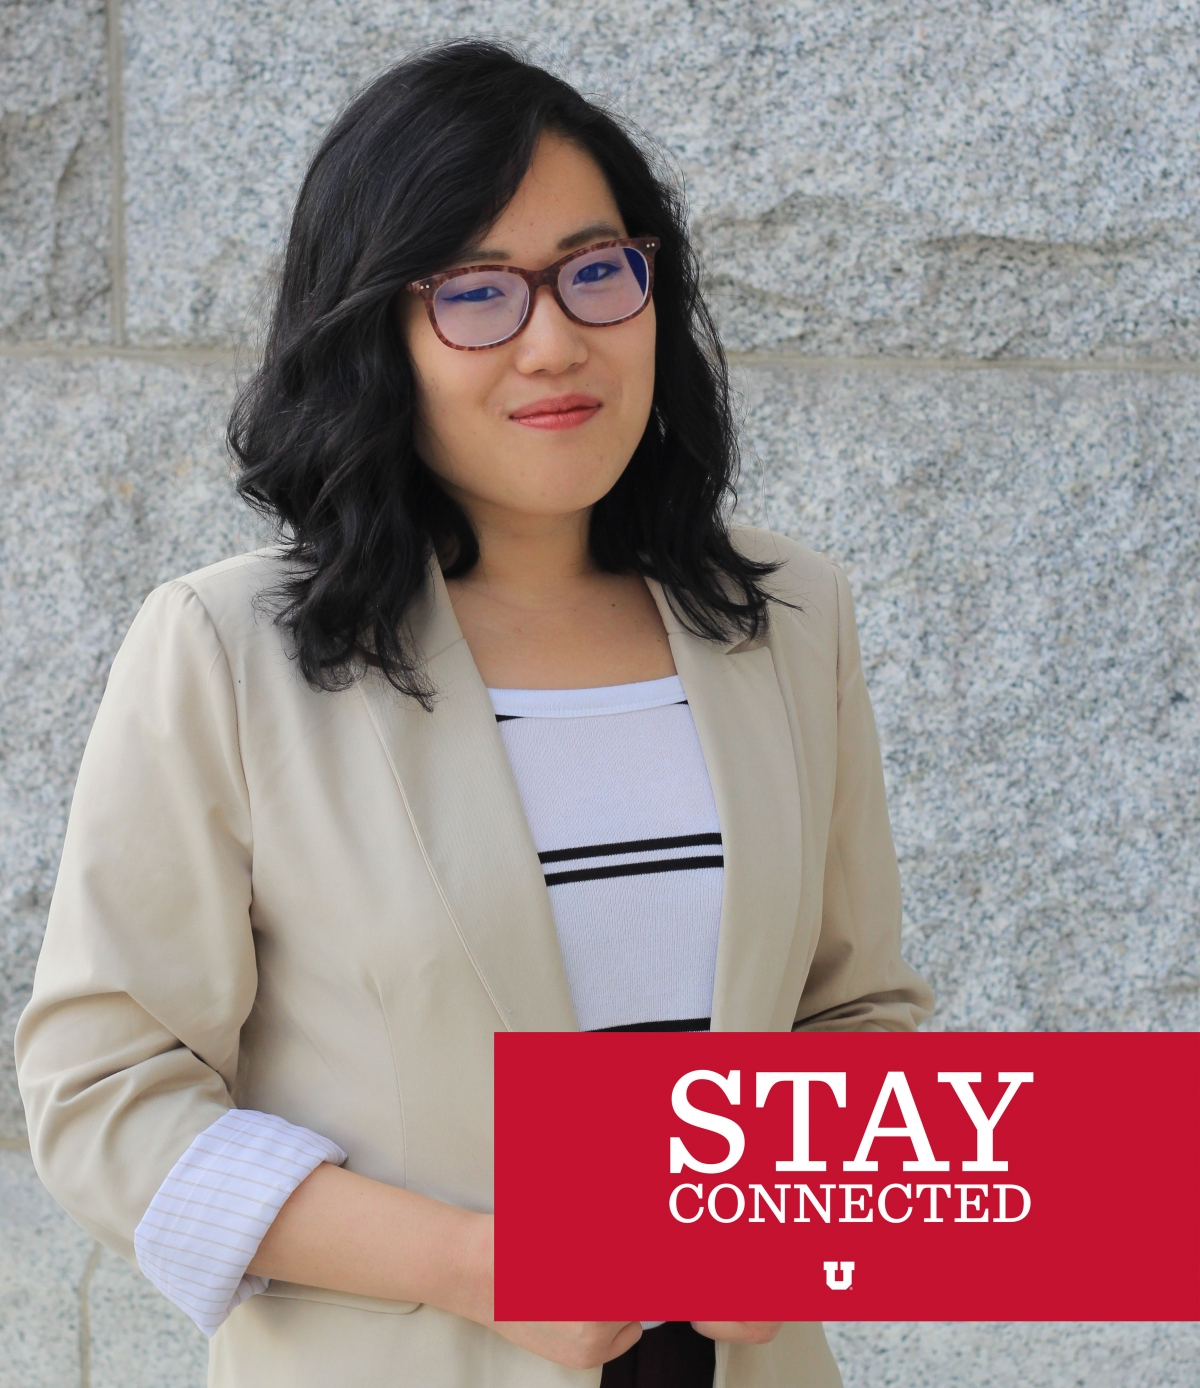 Stay Connected: Cynthia Chen